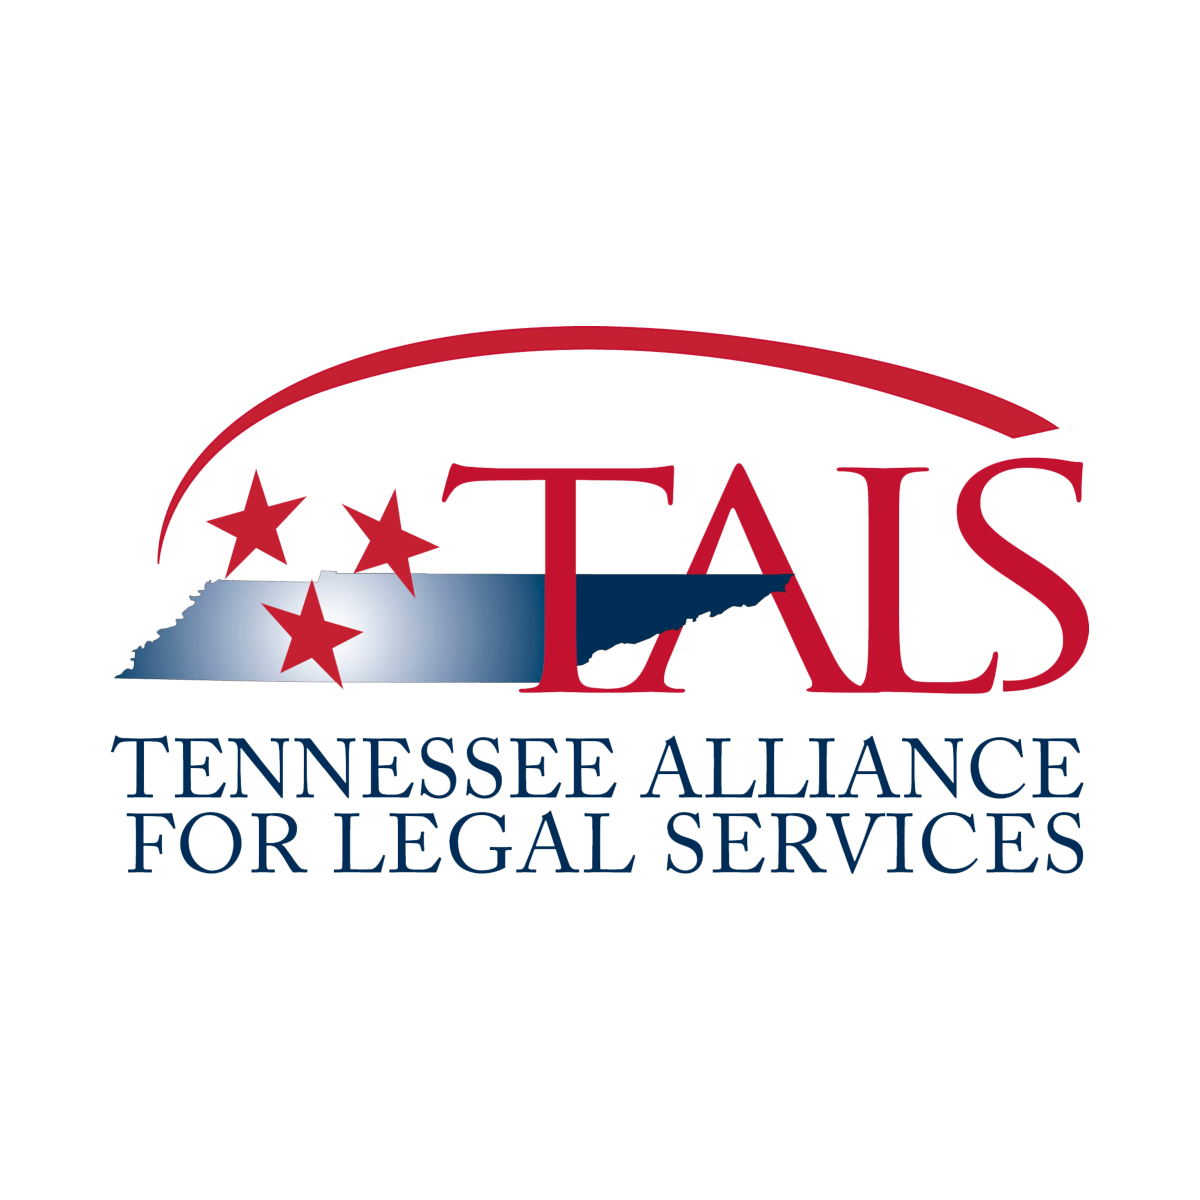 Tennessee Alliance for Legal Services